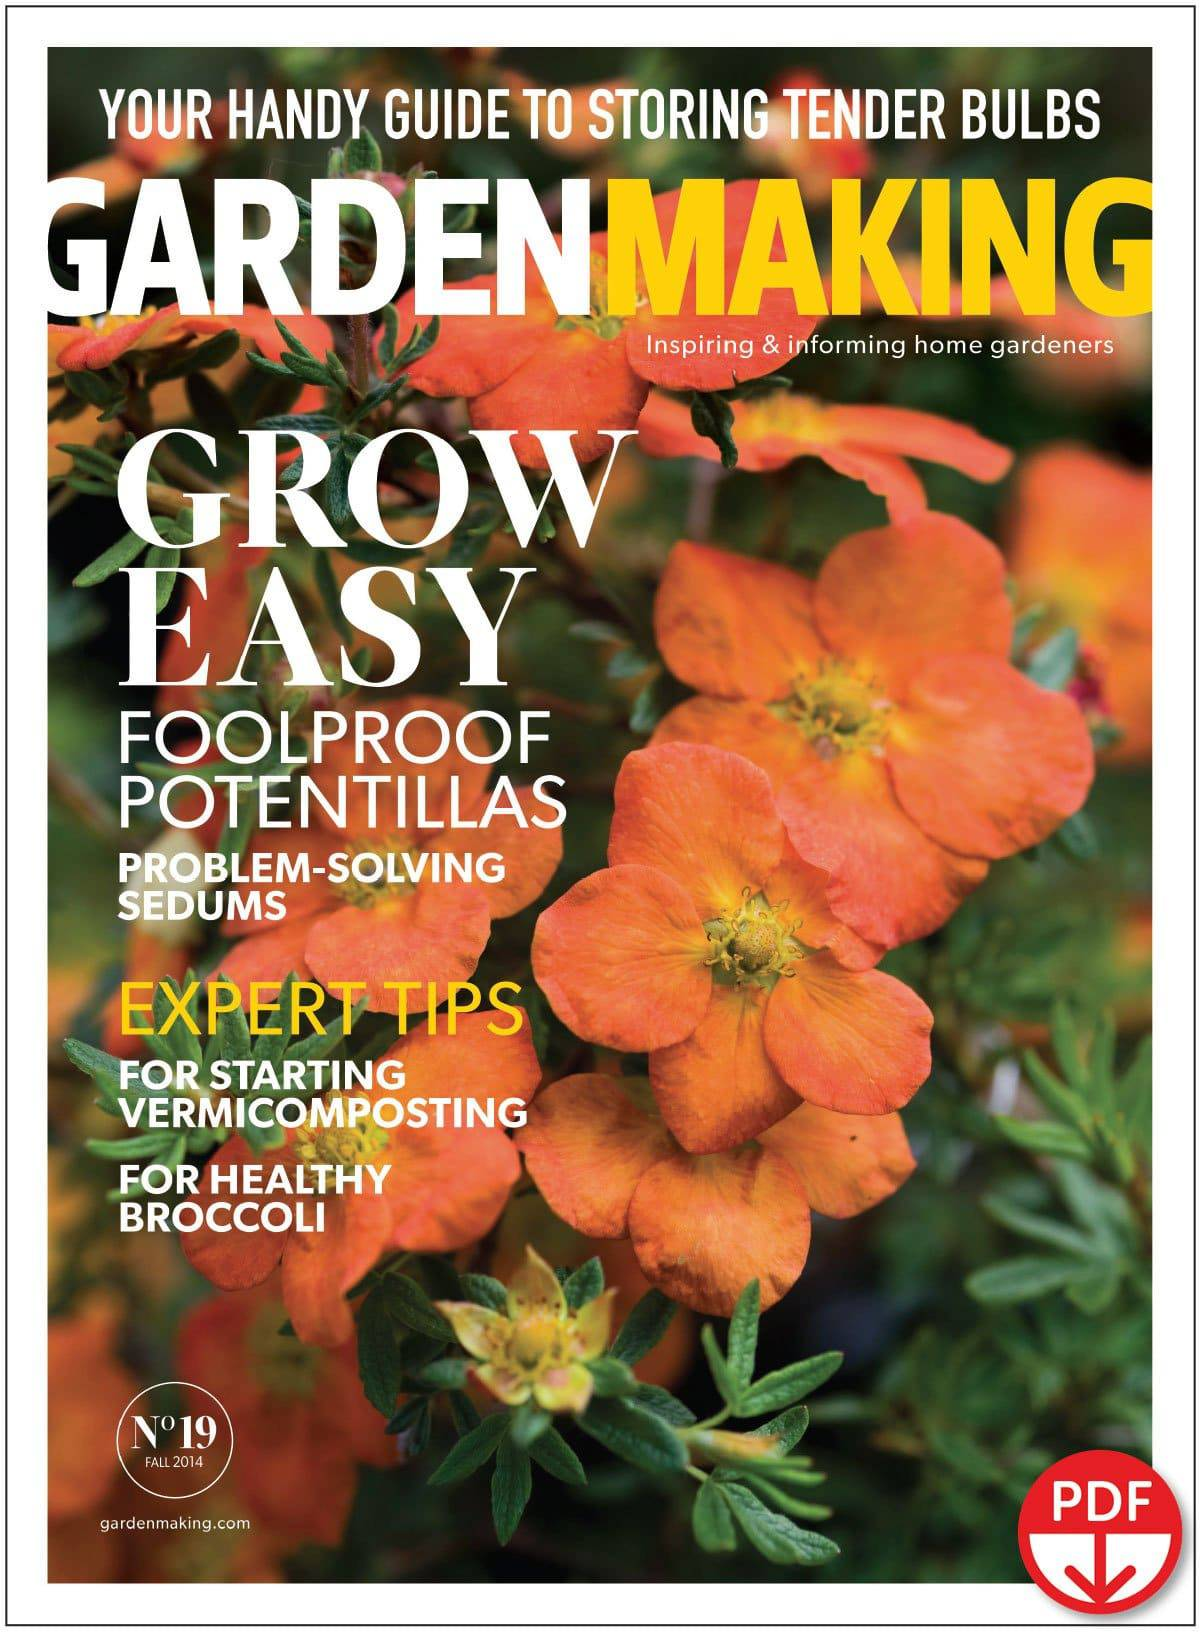 """Grow Easy"" expresses our approach to gardening. This is issue No. 19 of Garden Making."